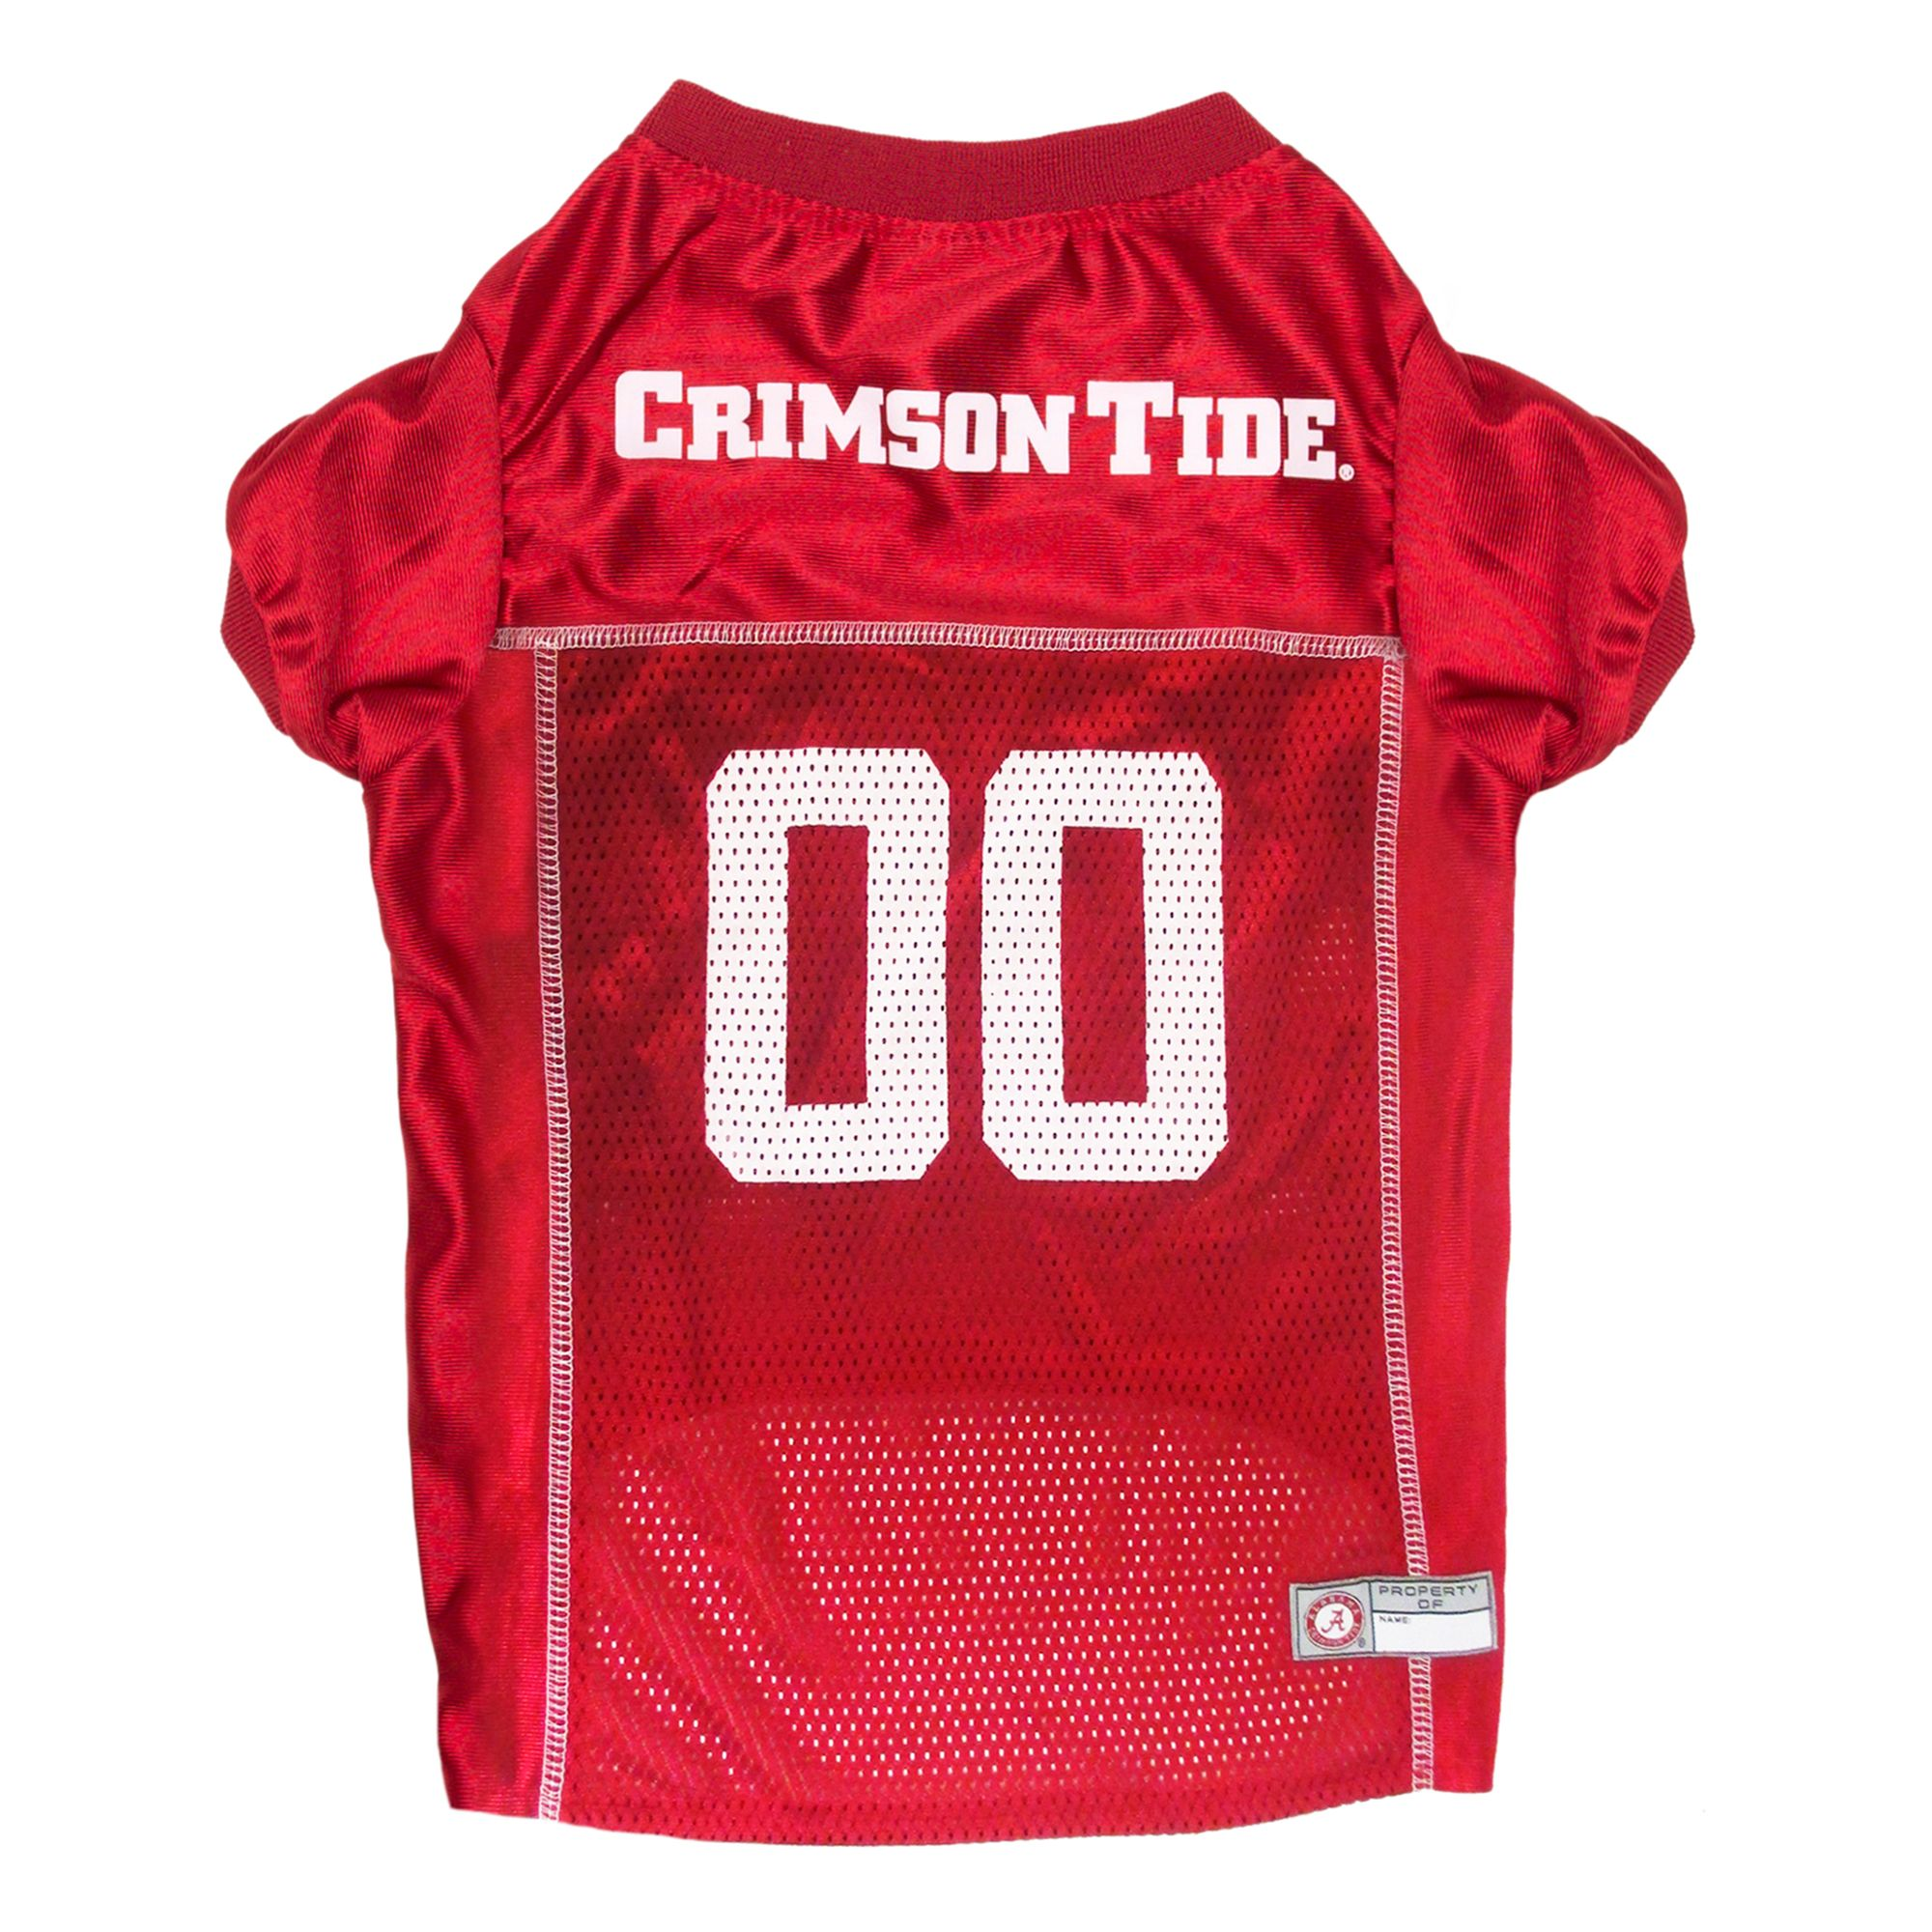 Alabama University Crimson Tide Ncaa Mesh Jersey size: 2X Large, Pets First 5259696